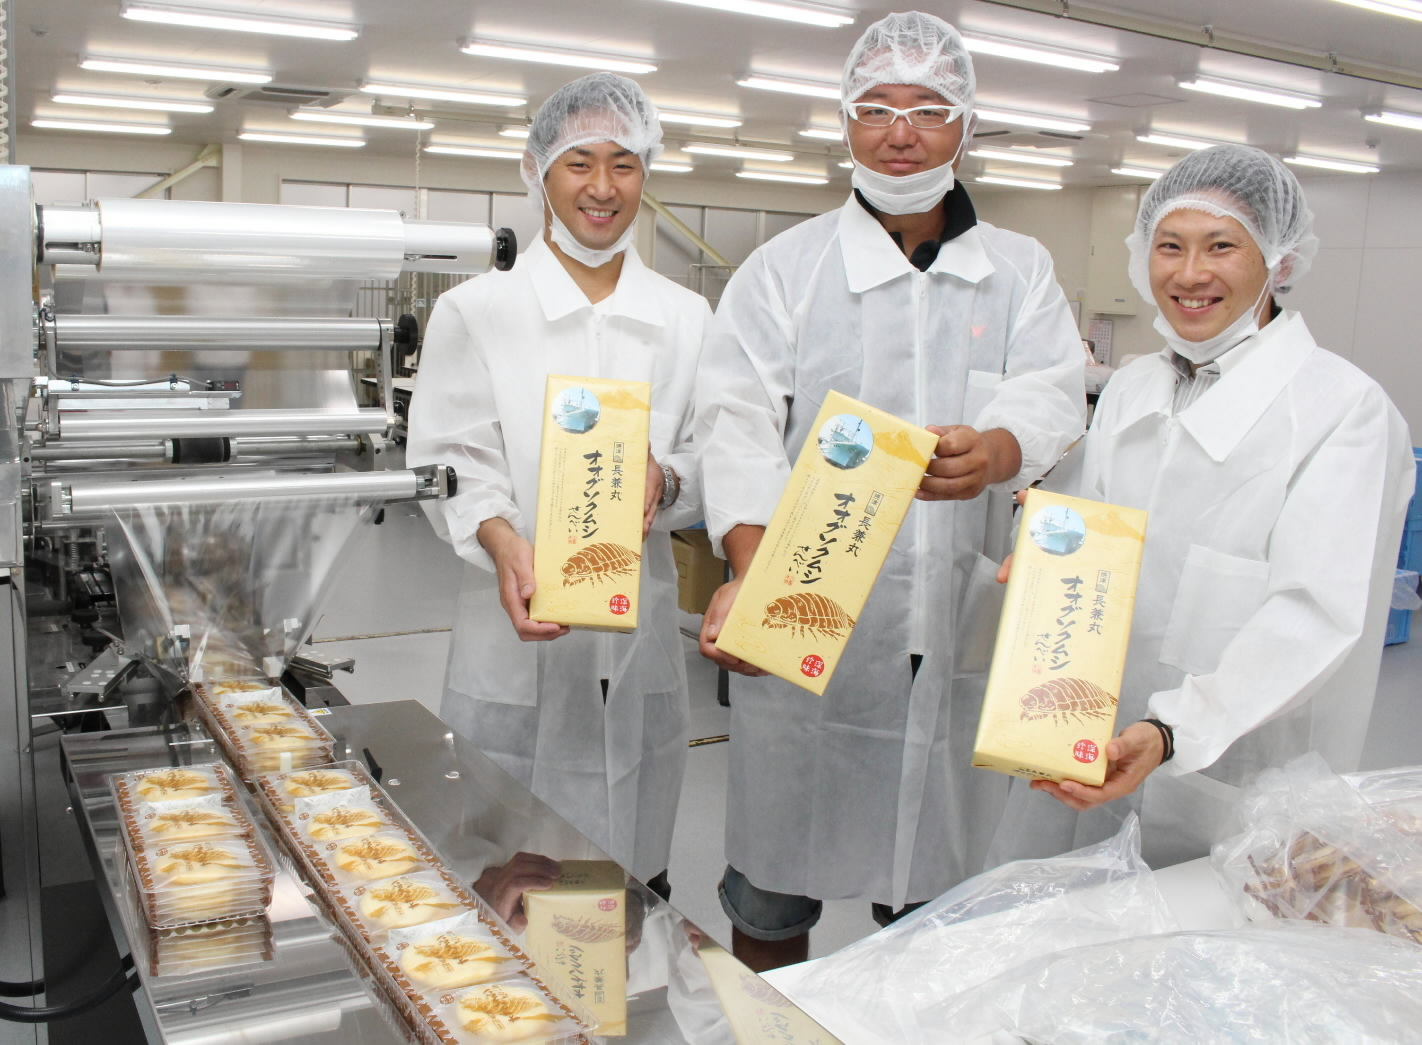 Kazutaka Hasegawa (center), a deep-sea fisherman, holds a package of giant isopod crackers at a production line in Fujieda, Shizuoka Prefecture. | CHUNICHI SHIMBUN